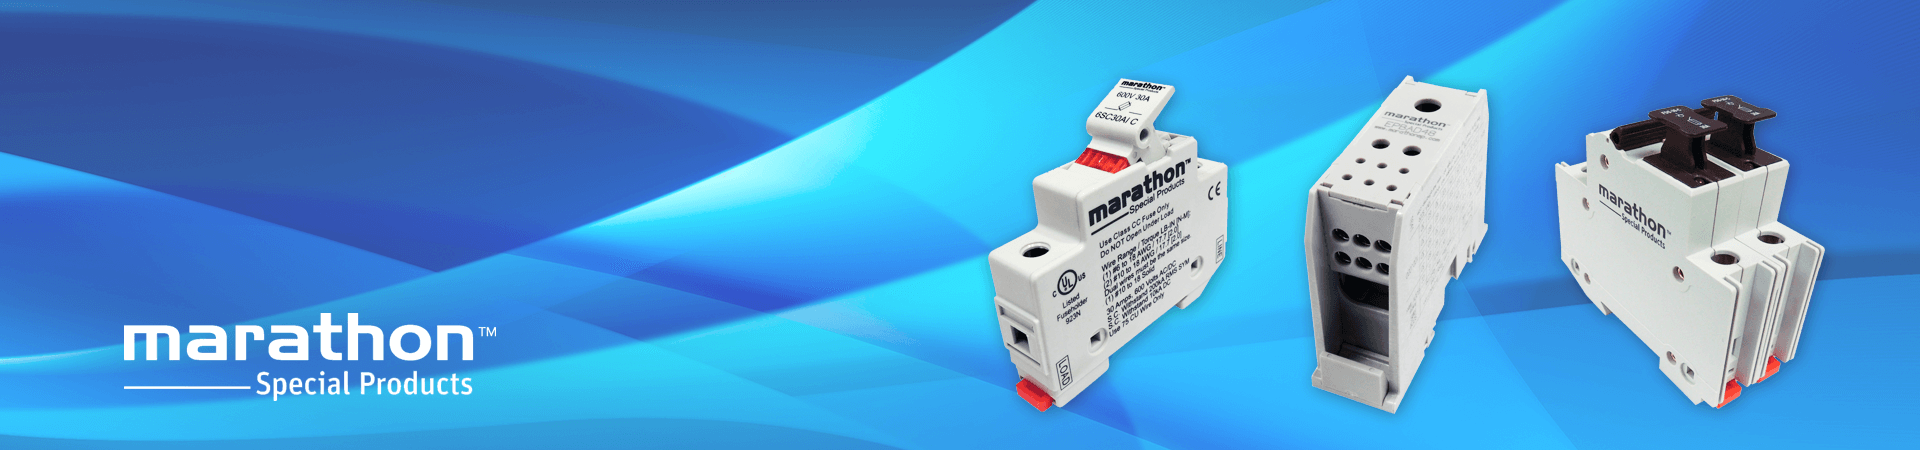 Power Blocks, Terminal Blocks, and Fuse Holders by Marathon Special Products